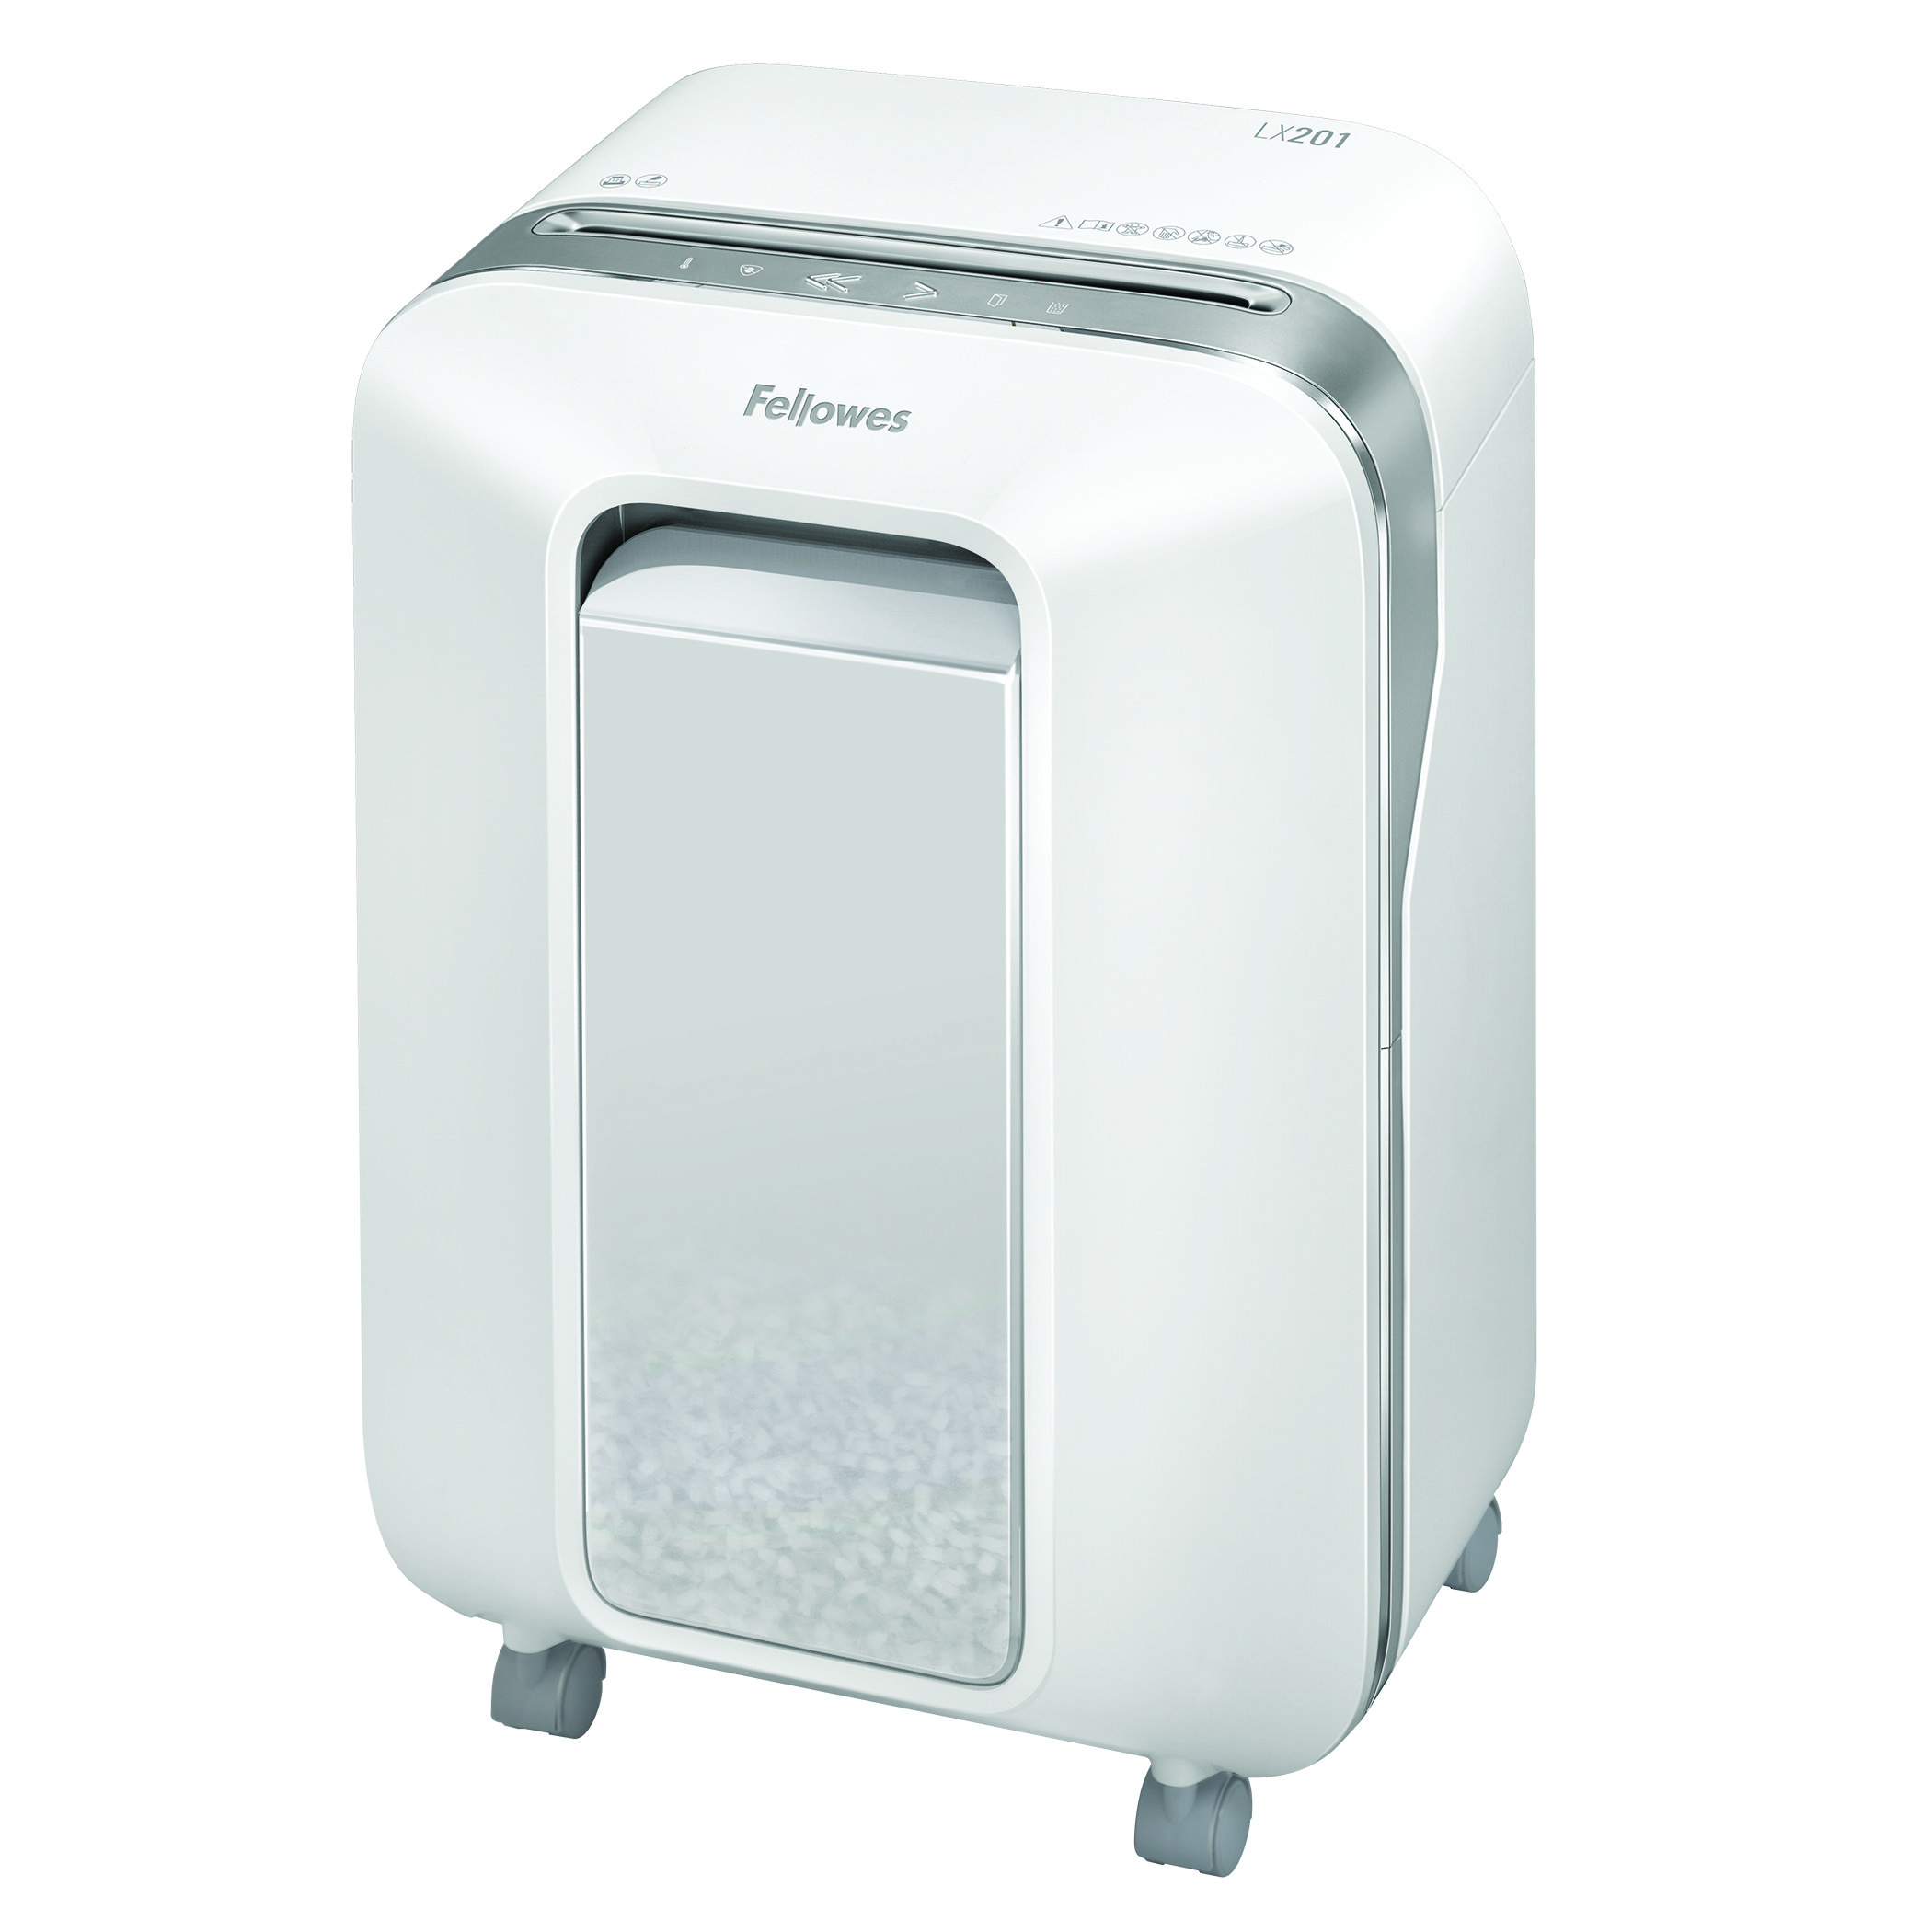 Shredders Fellowes Microshred LX201 White Shredder